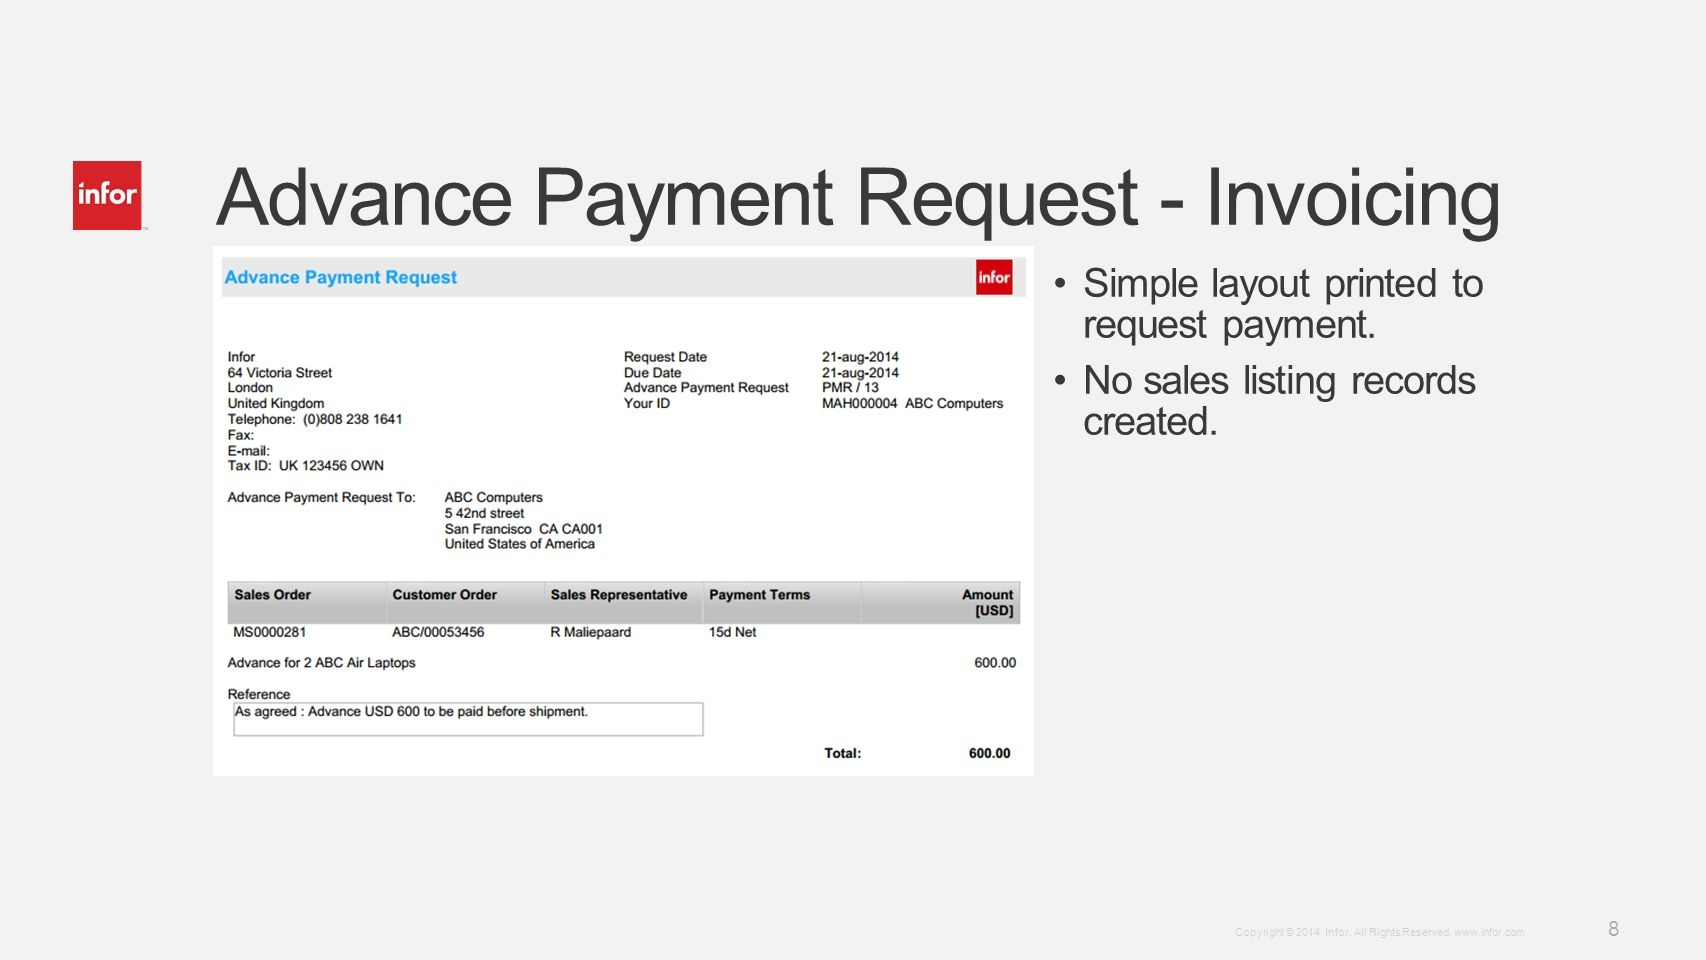 infor ln 104 invoicing advance invoicing enhancements invoice payment 50 advance